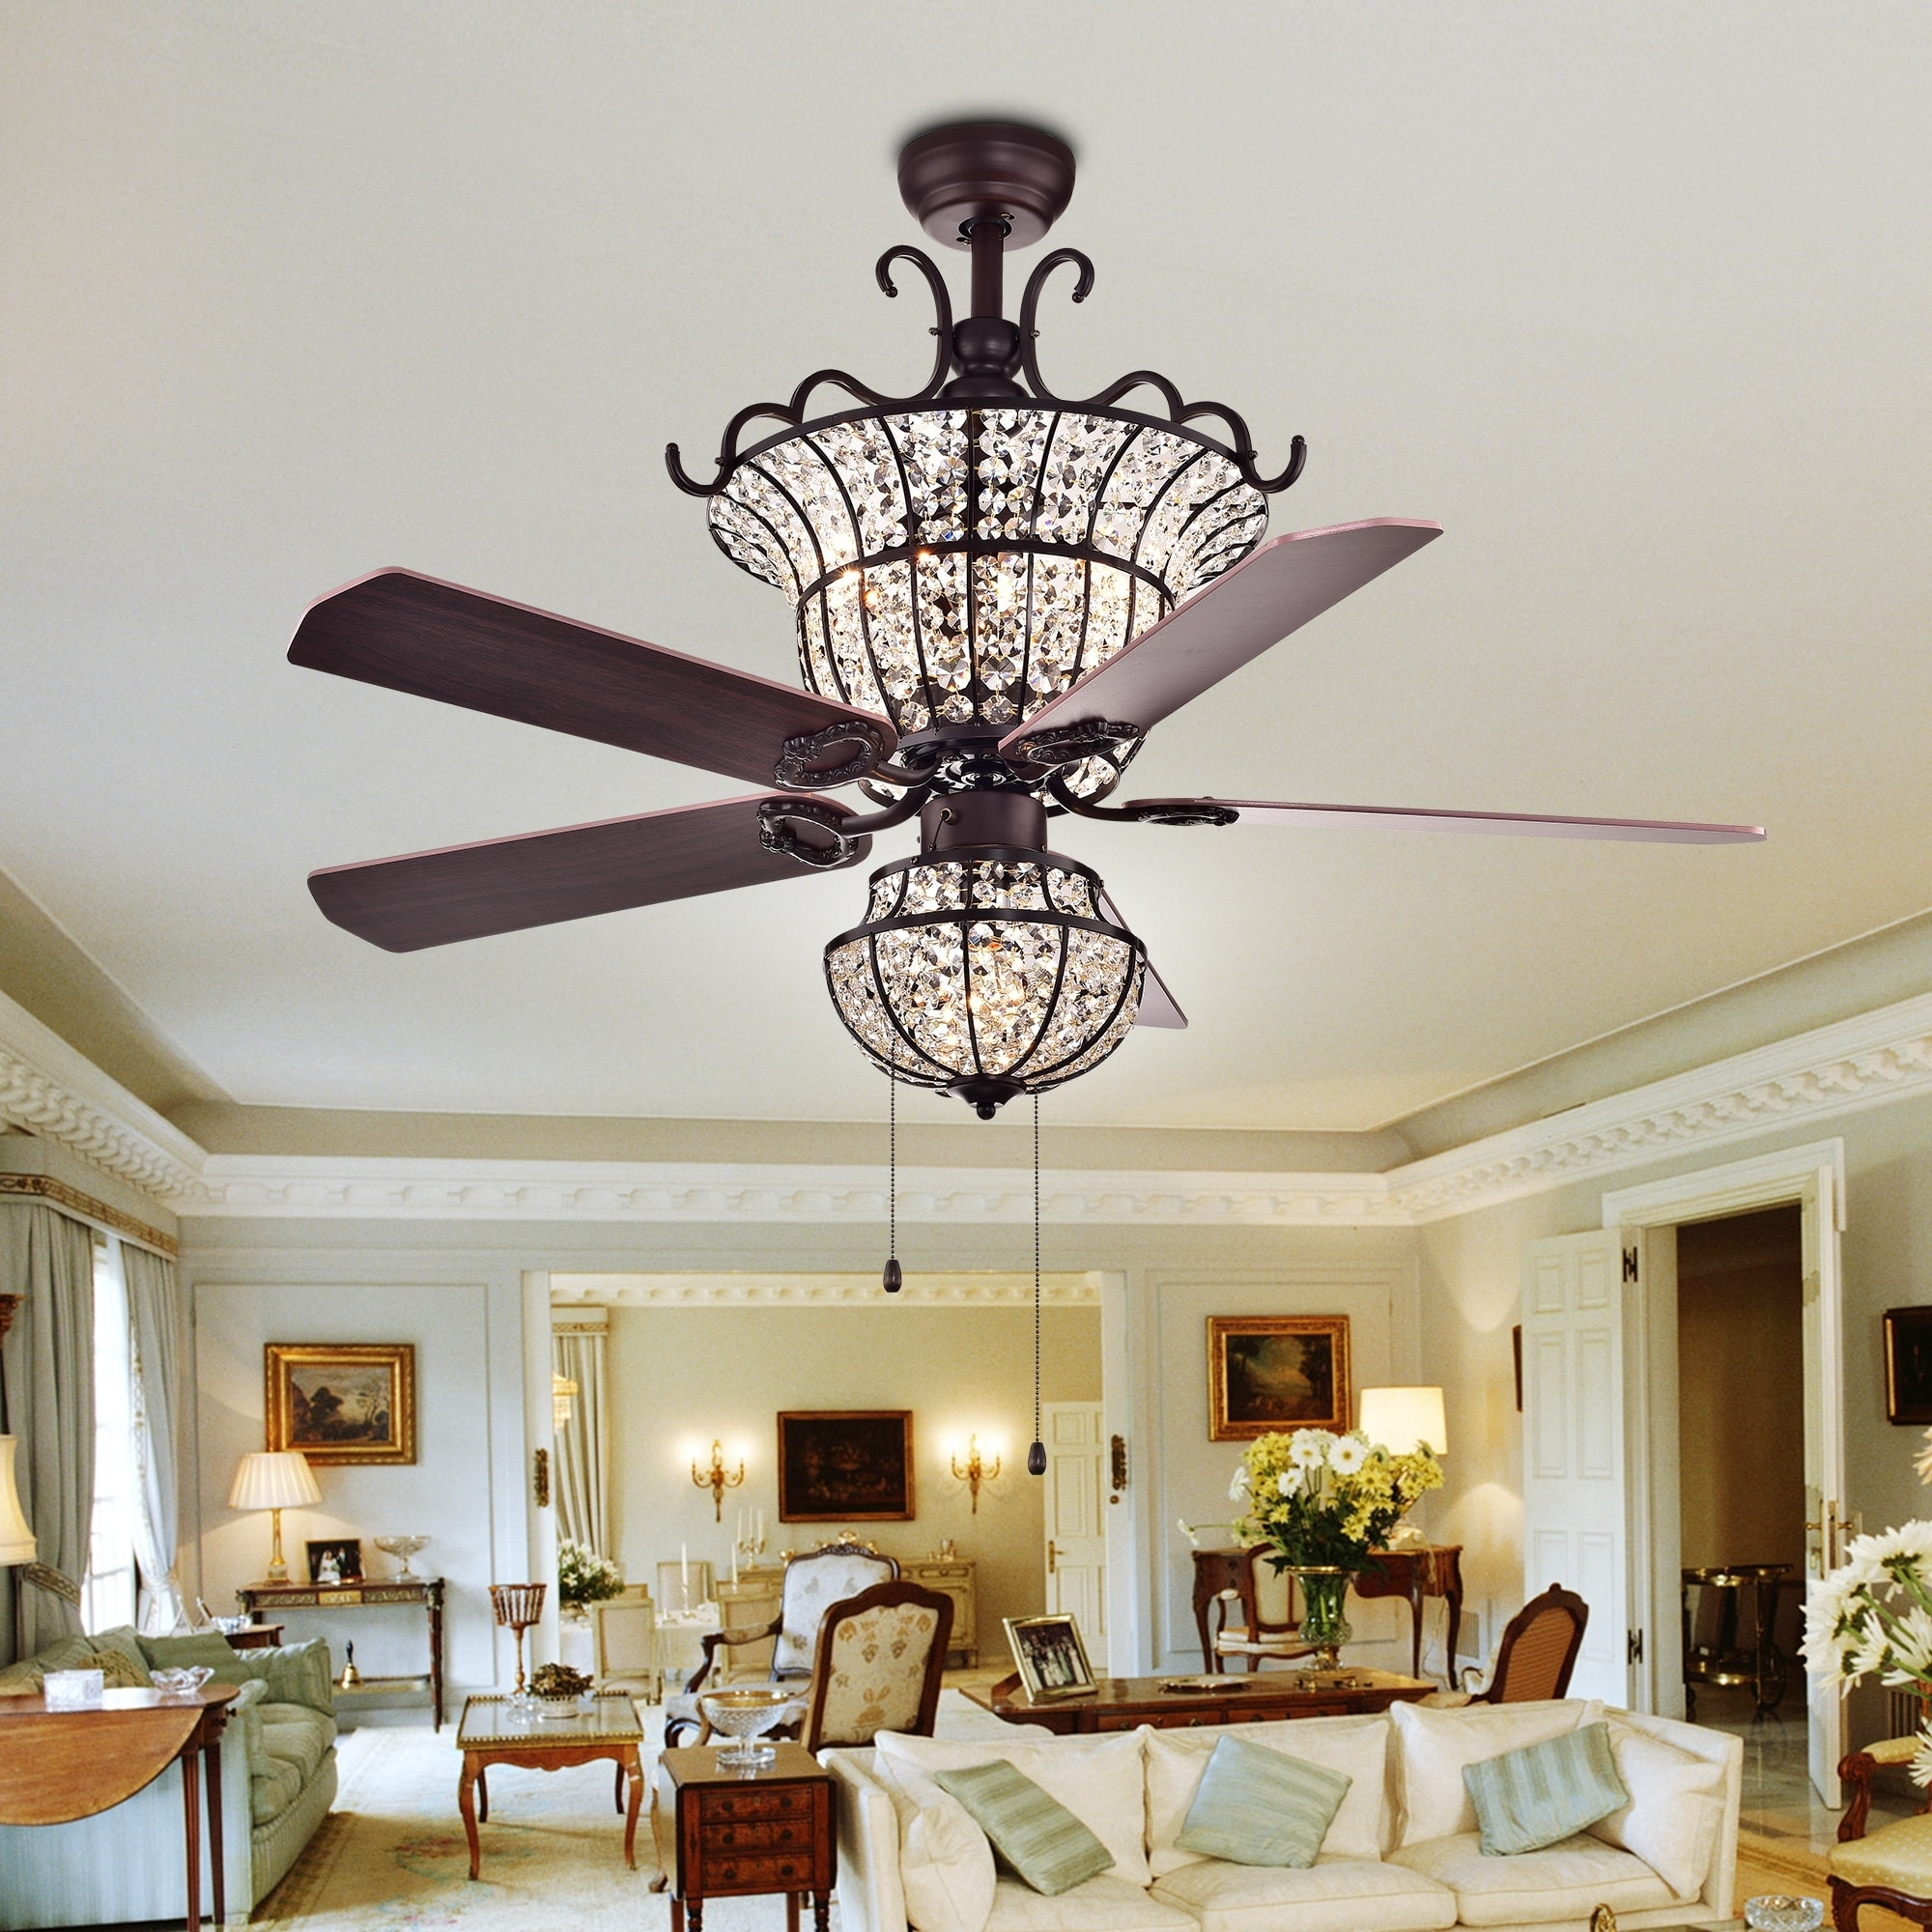 Buy Ceiling Fans Online At Overstock (View 20 of 20)